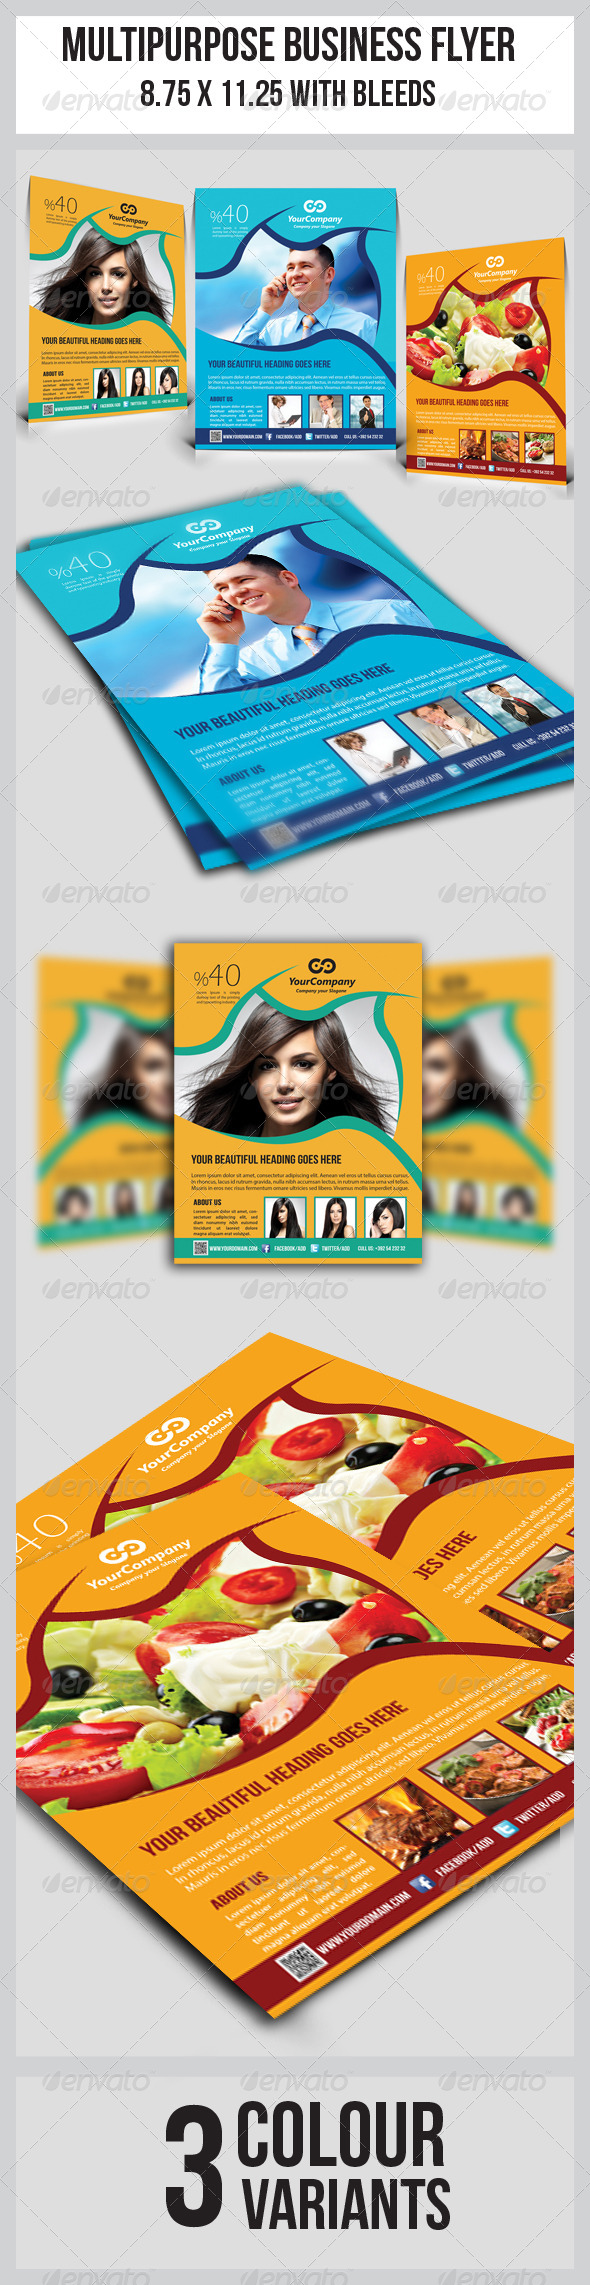 GraphicRiver Multipurpose Business Flyer 6013730